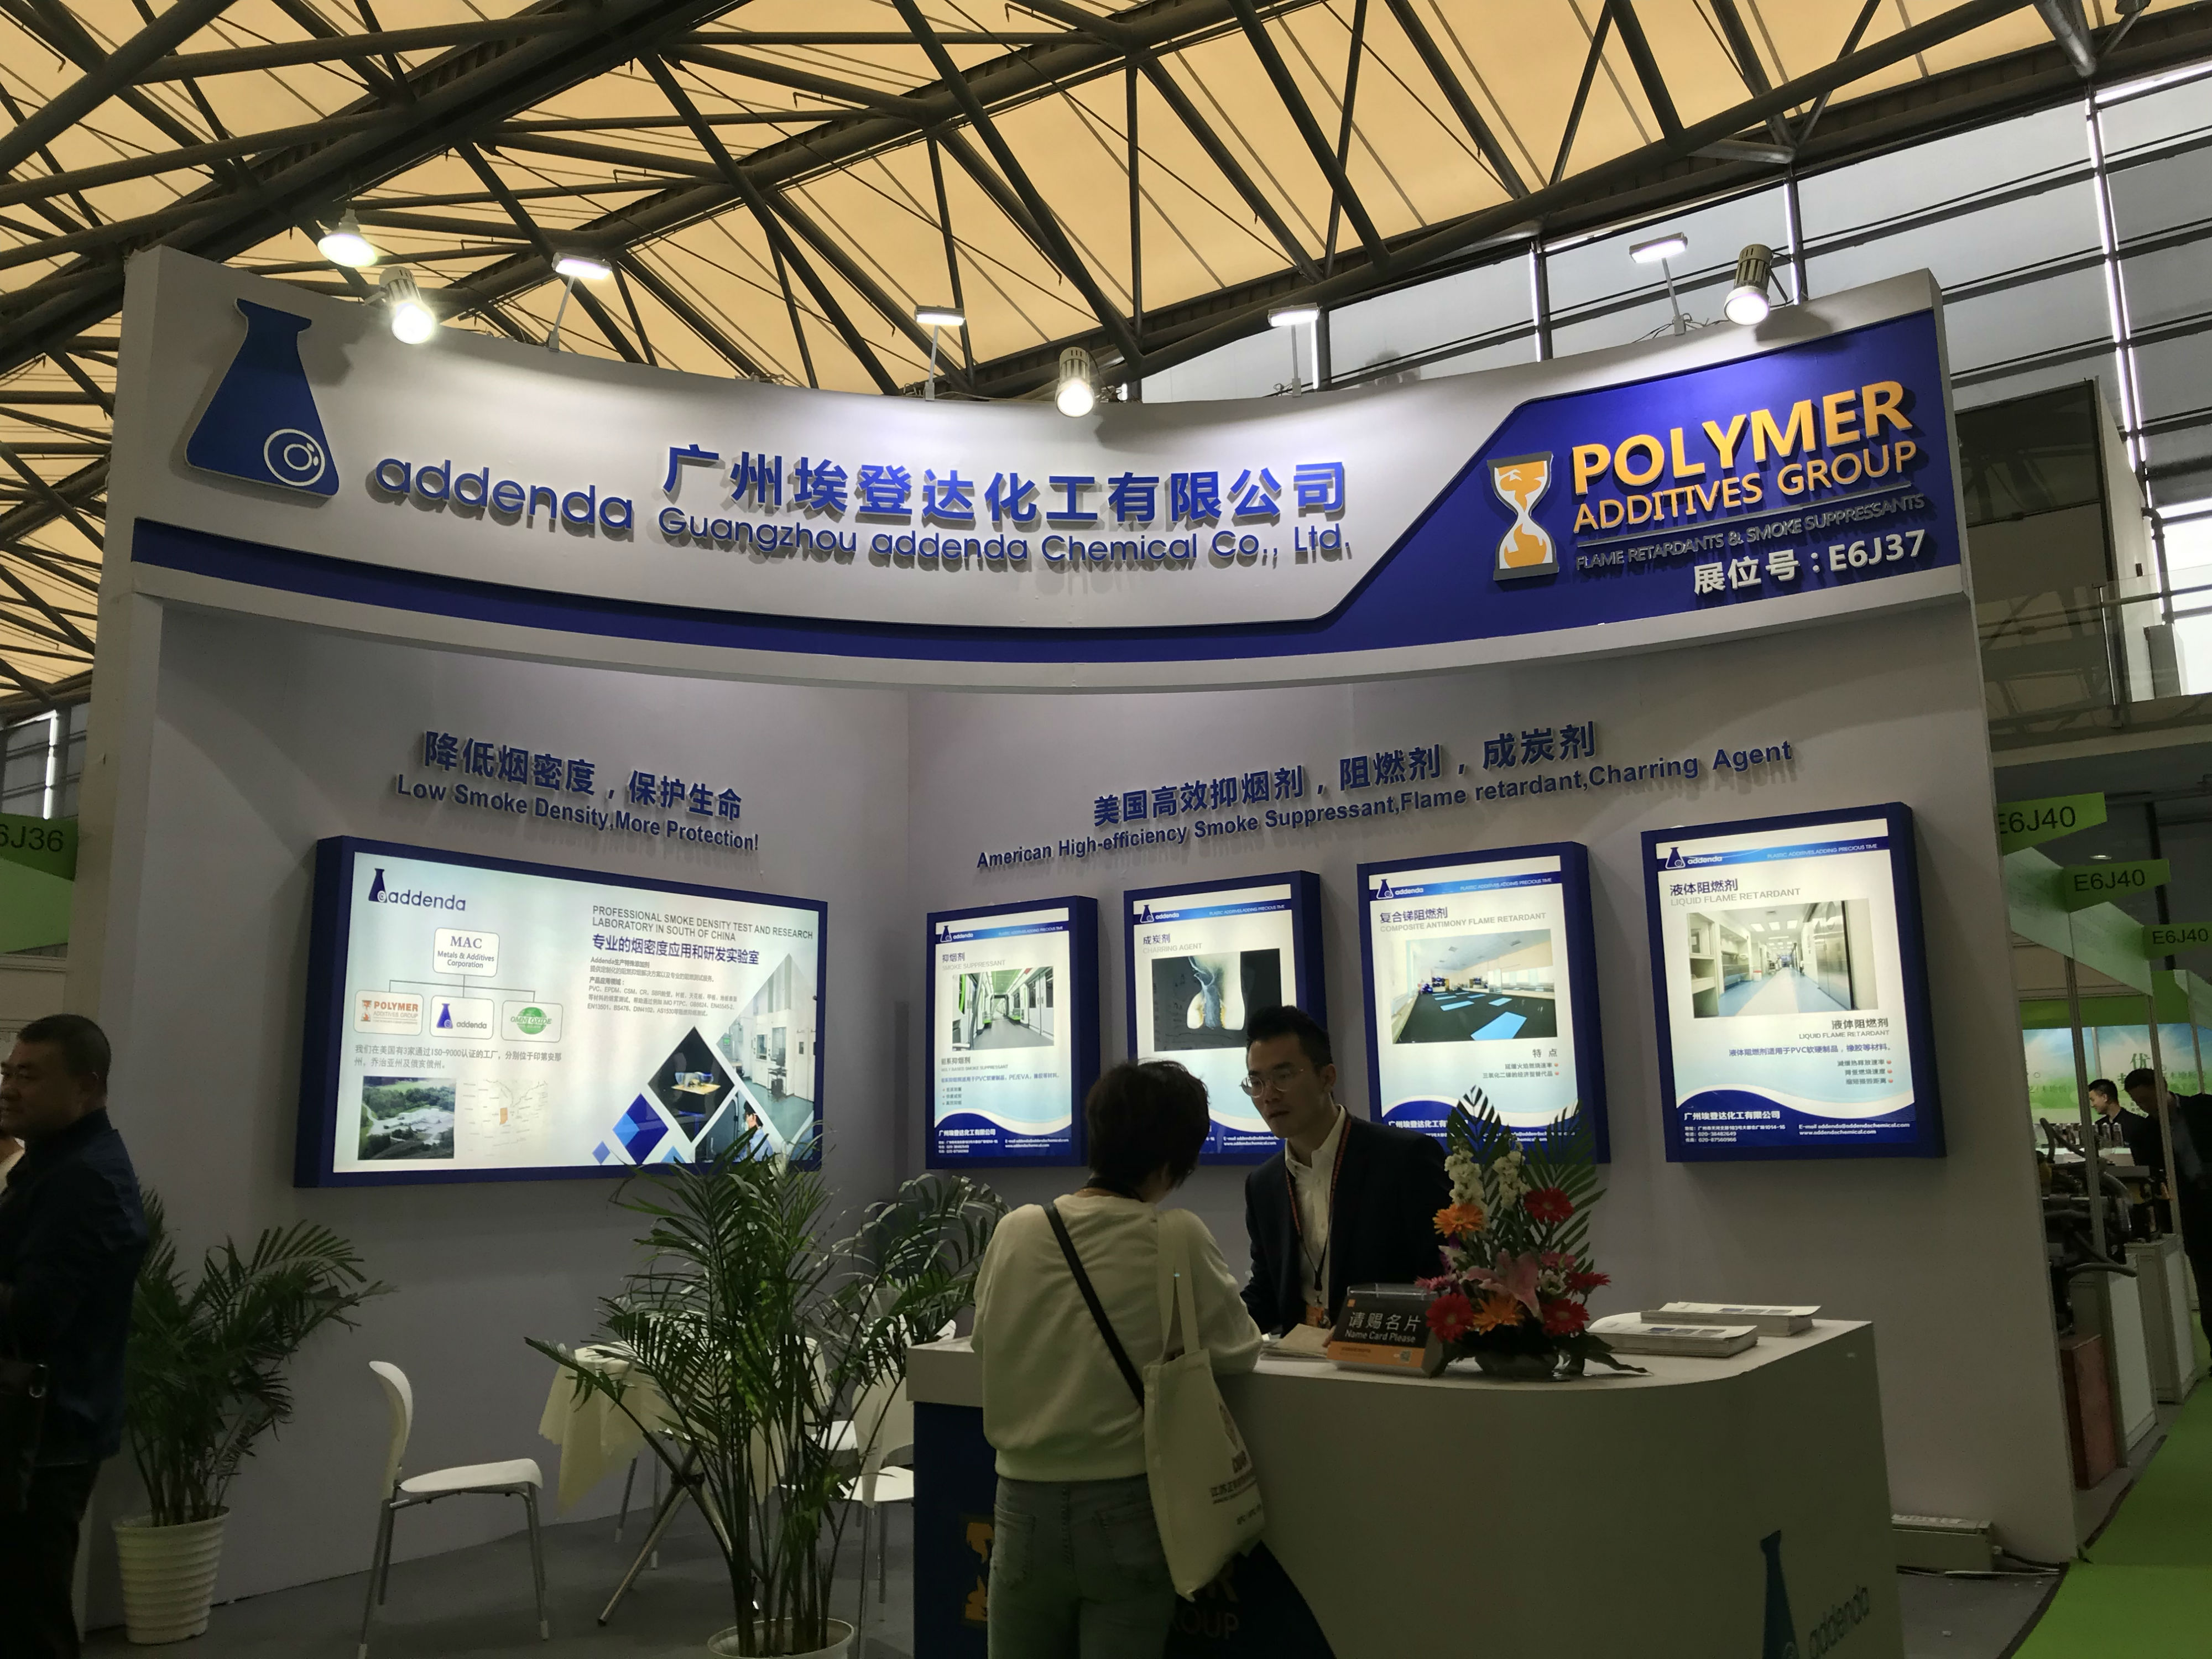 Addenda participated in the 21st China International Ground Material Exhibition (Shanghai) in March 2019